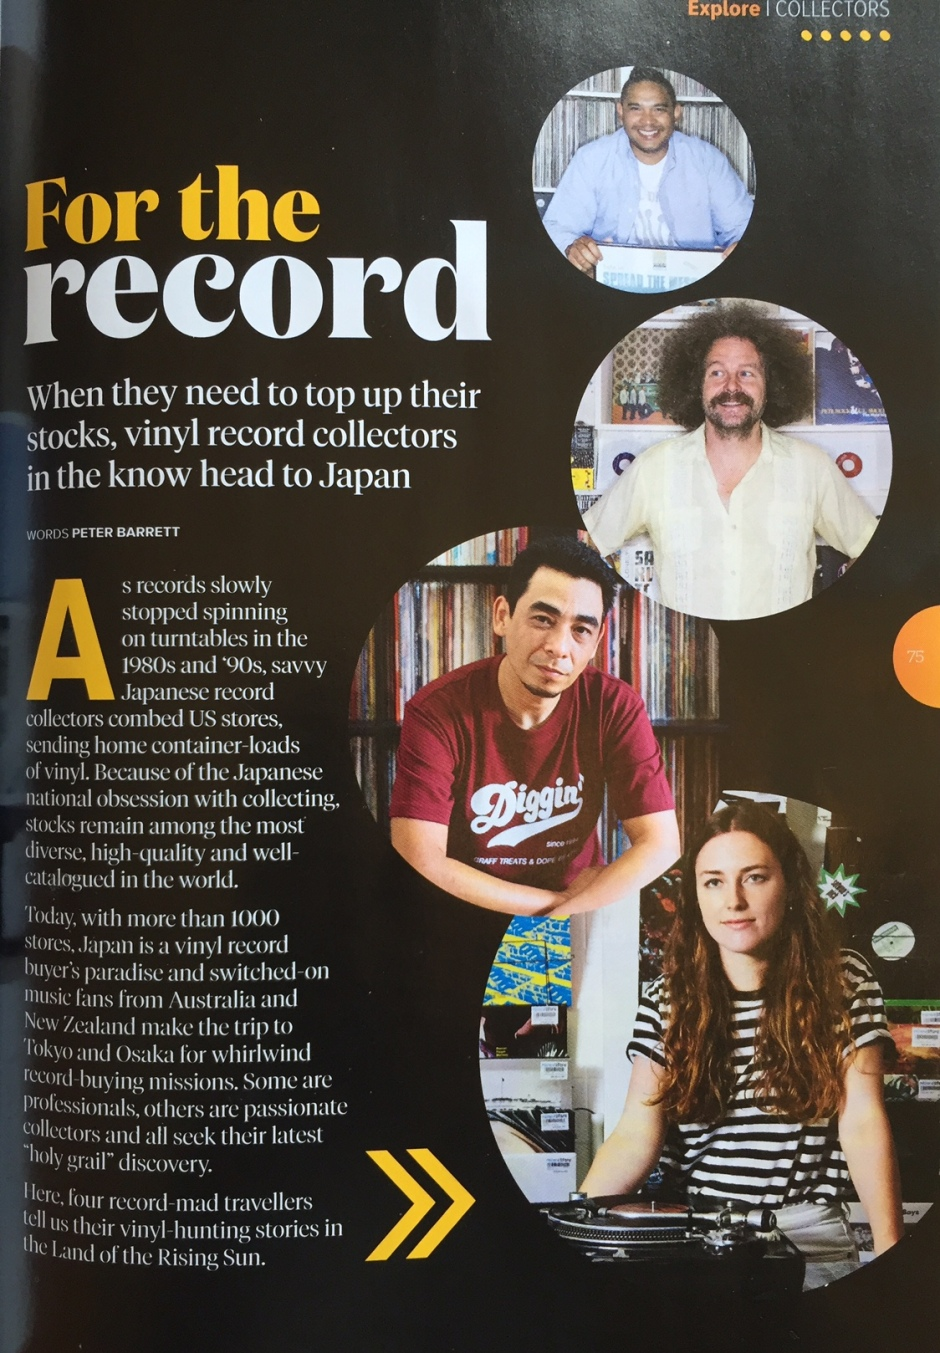 For the record 01